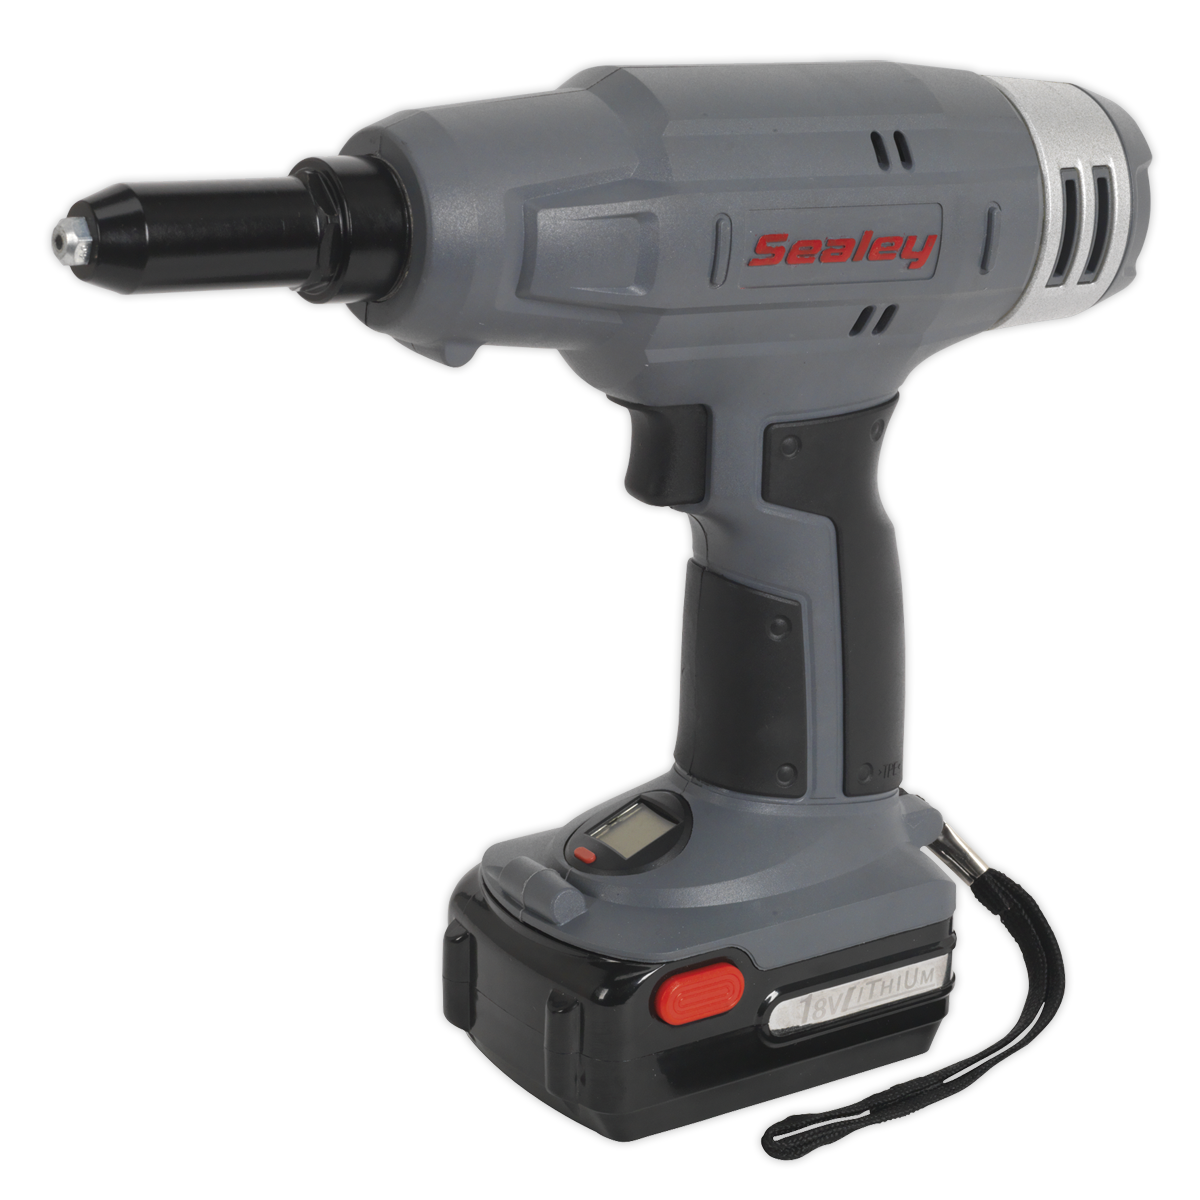 Cordless Riveter 18V 1.5Ah Lithium-ion 1hr Charger